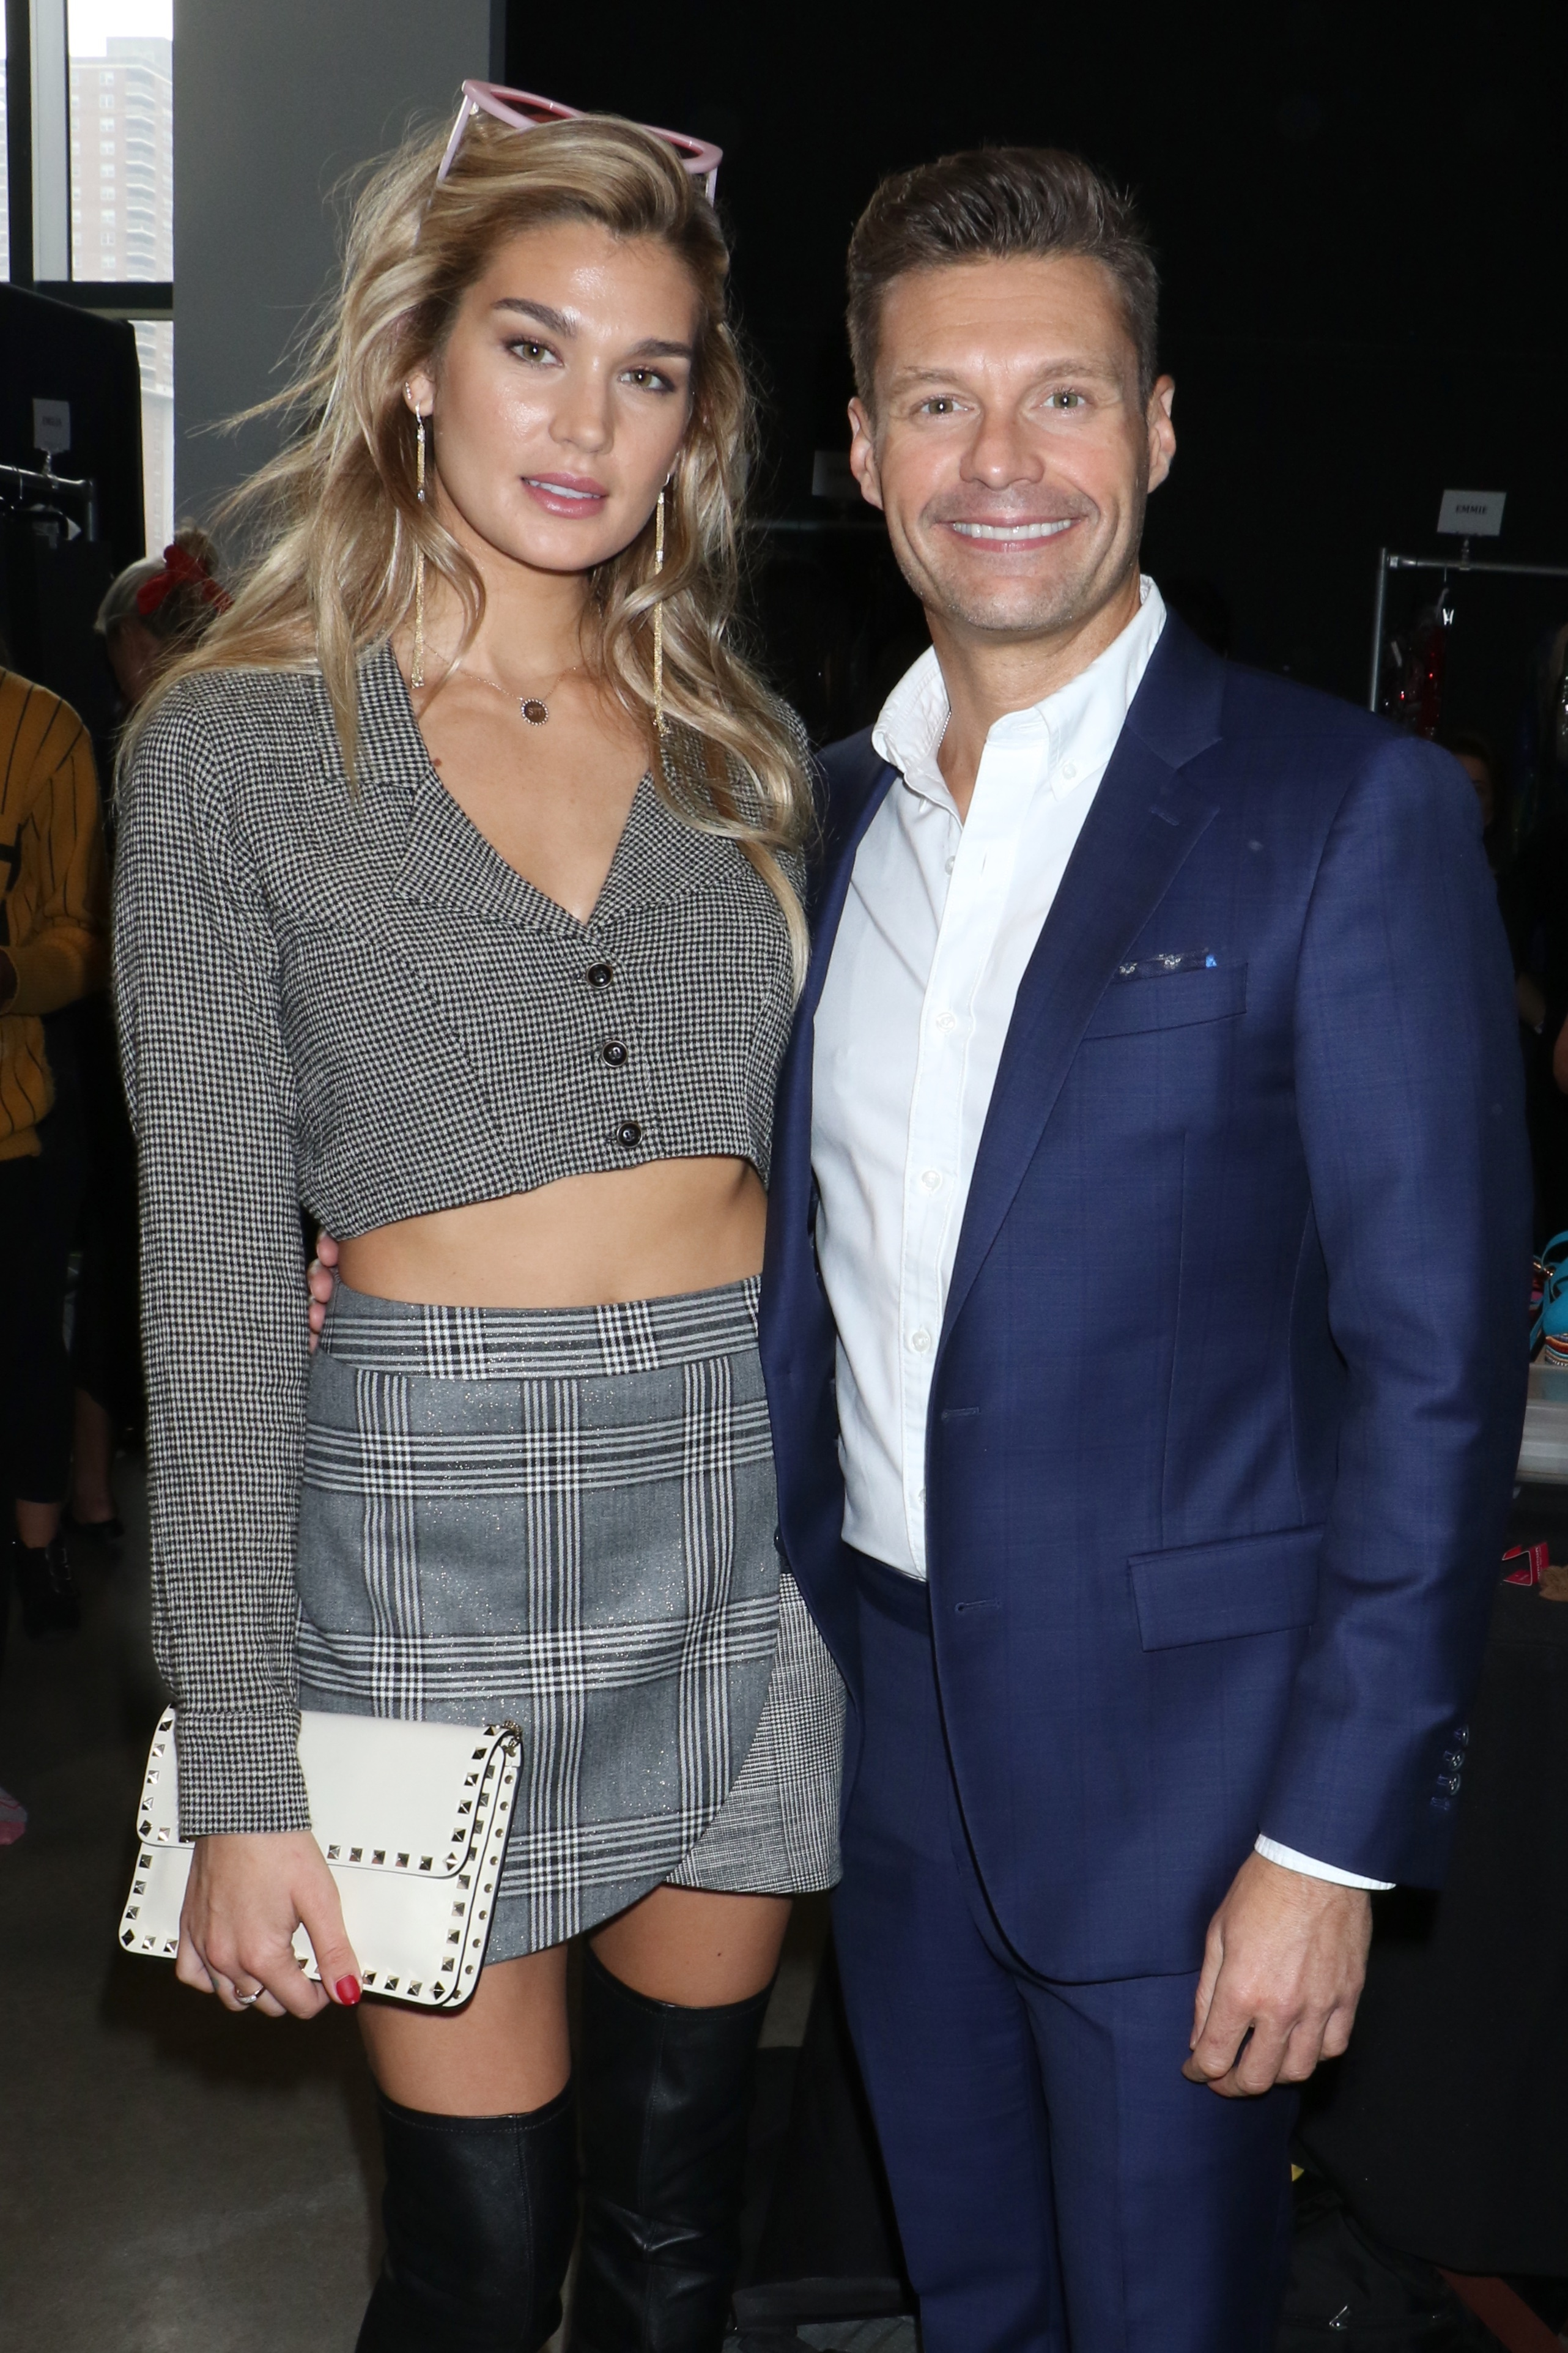 Who is ryan seacrest dating